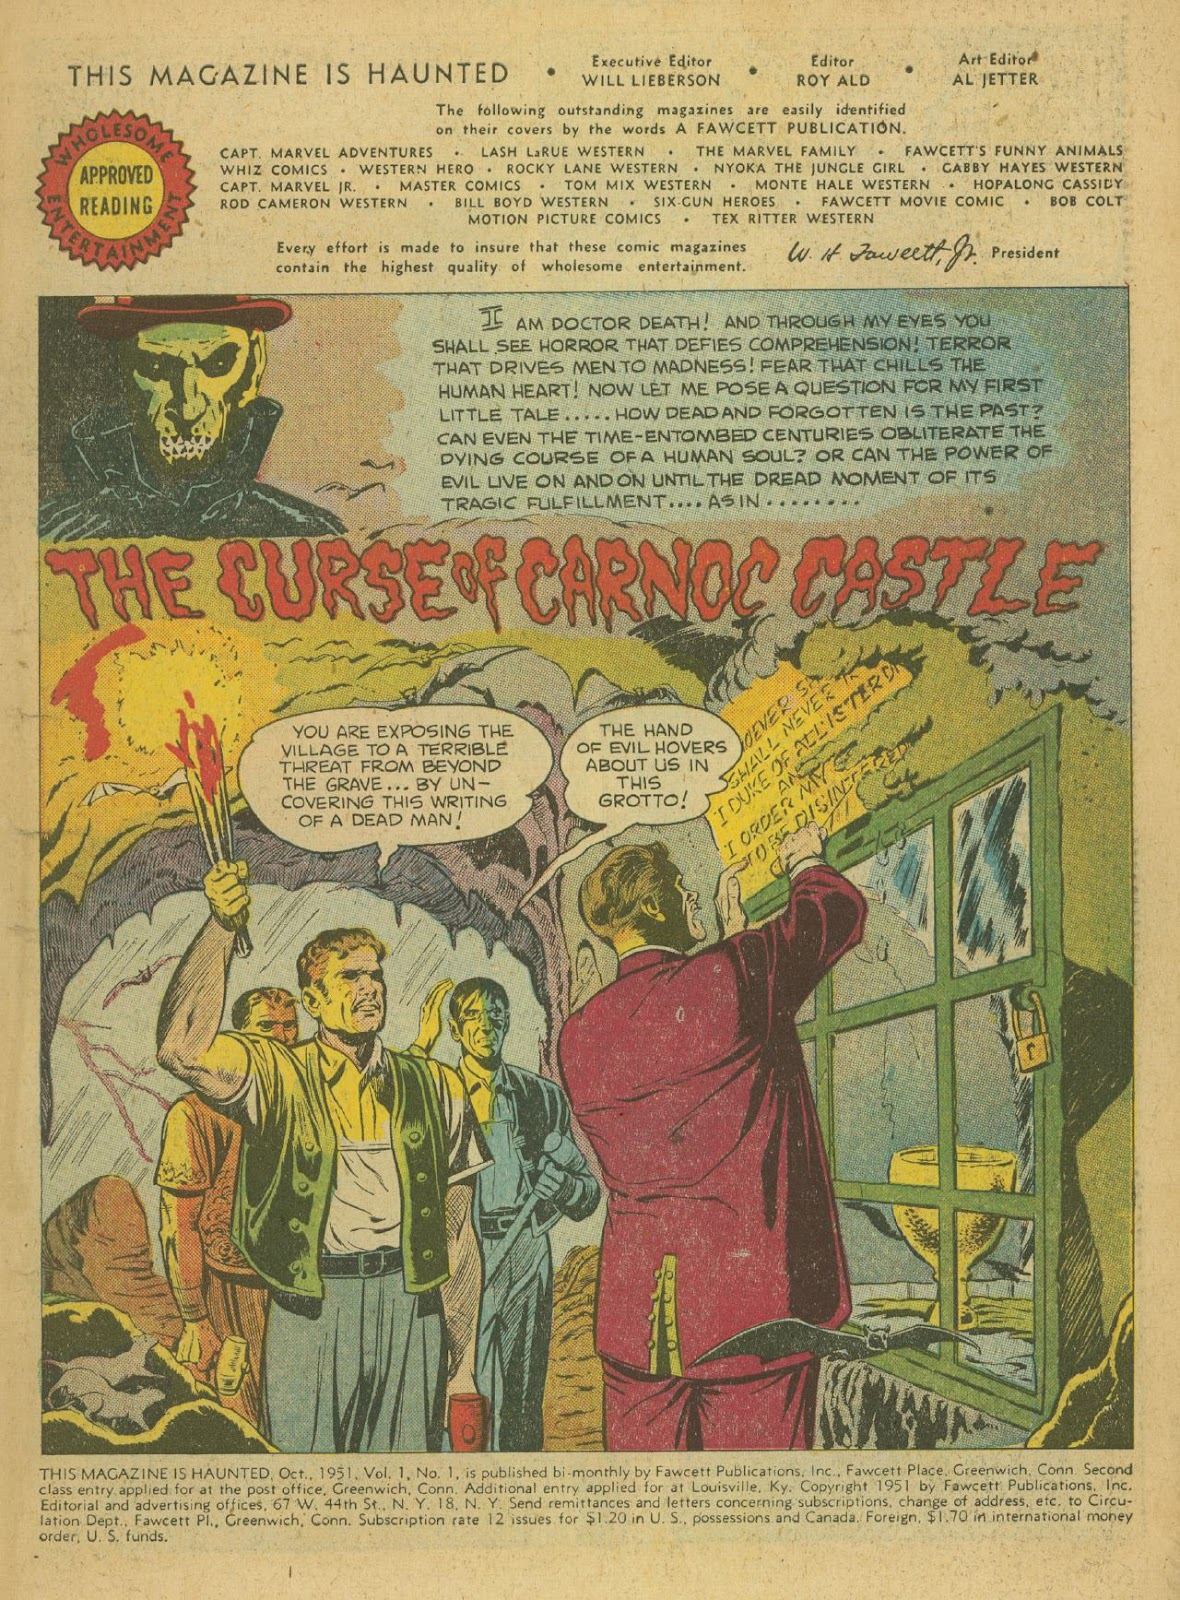 Read online This Magazine Is Haunted comic -  Issue #1 - 3